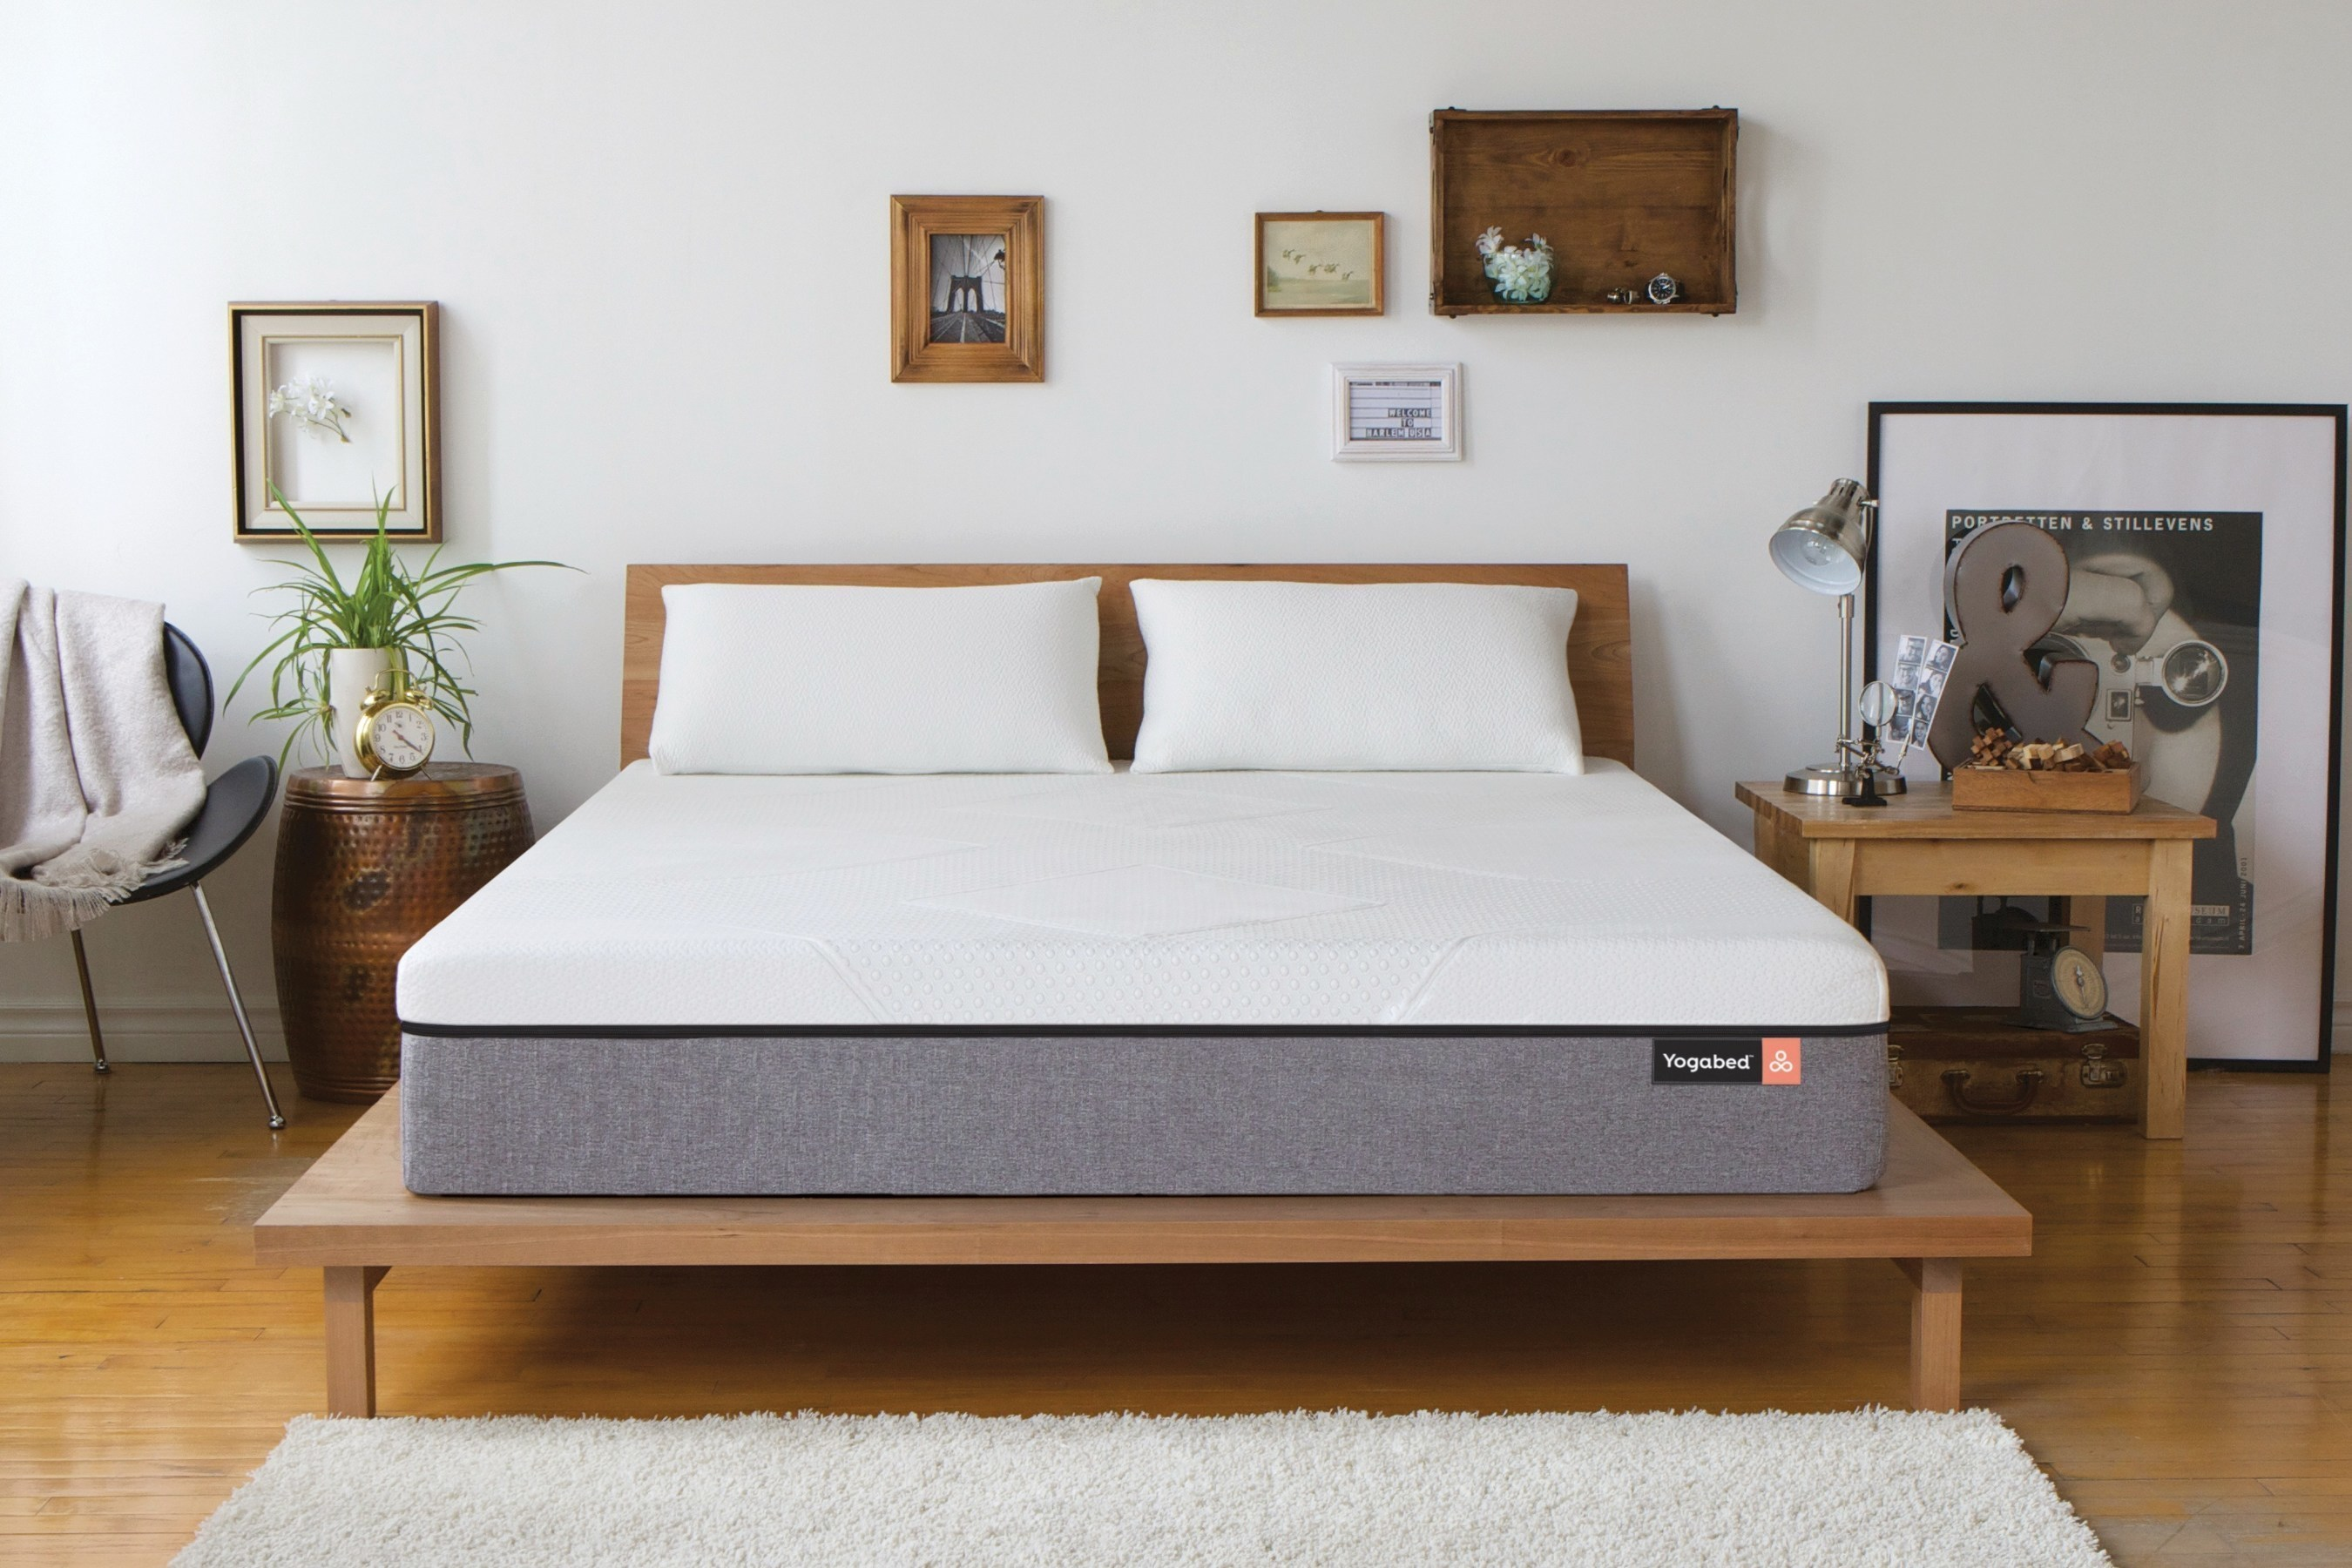 Sleep Now Pay Later Yogabed Makes A Great Night S More The Smart Mattress